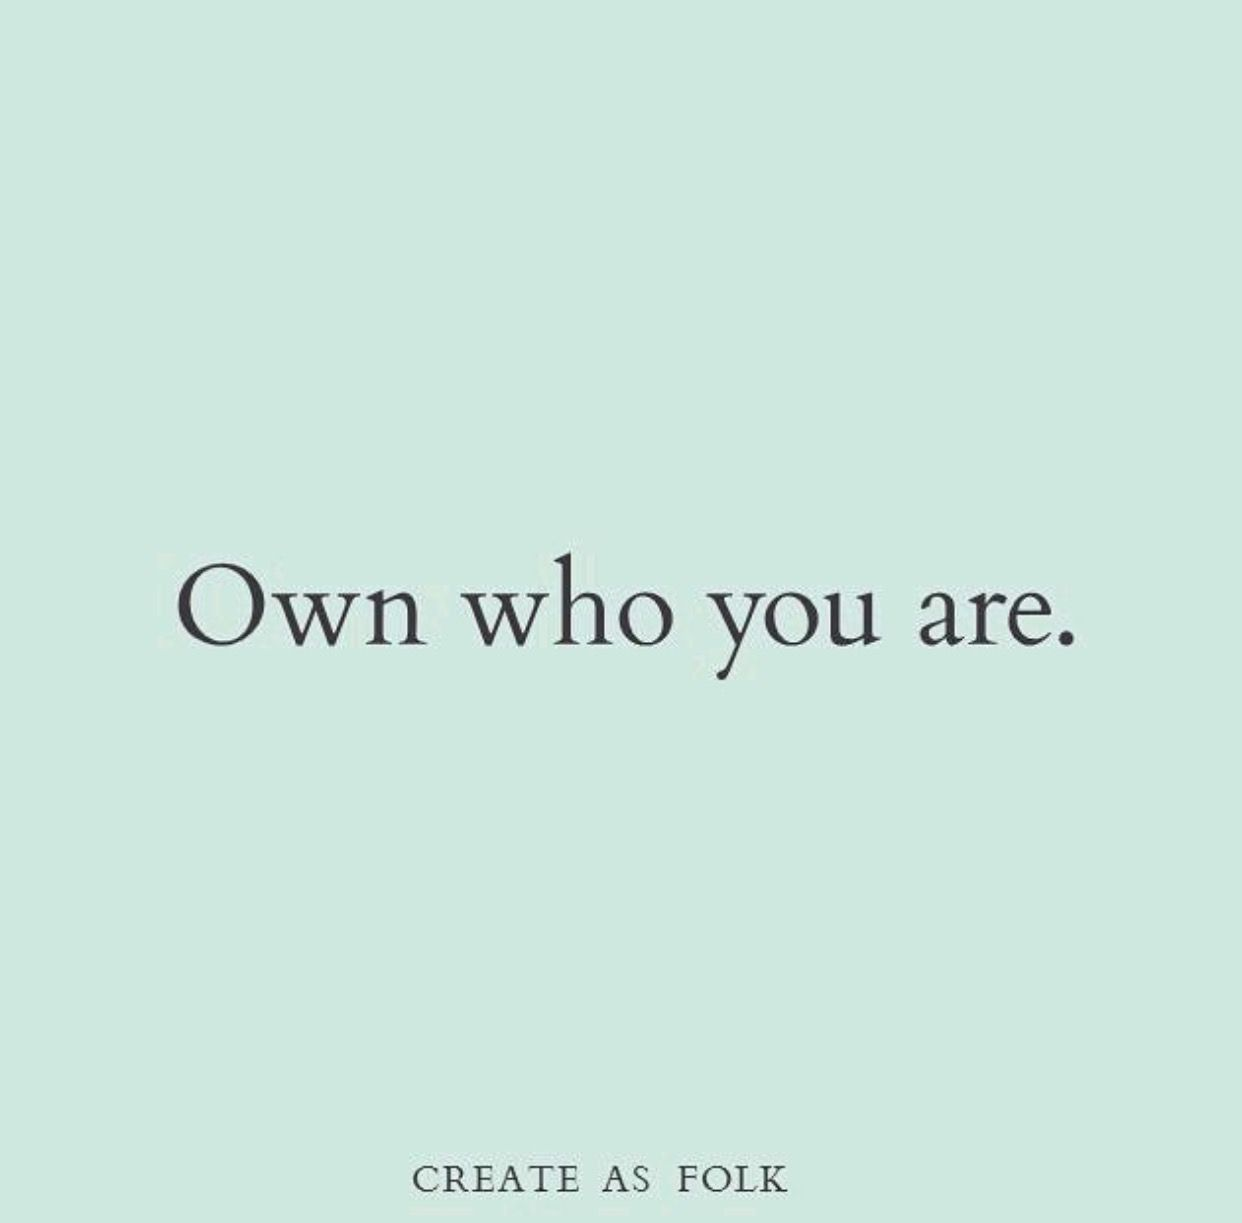 Own who your are.